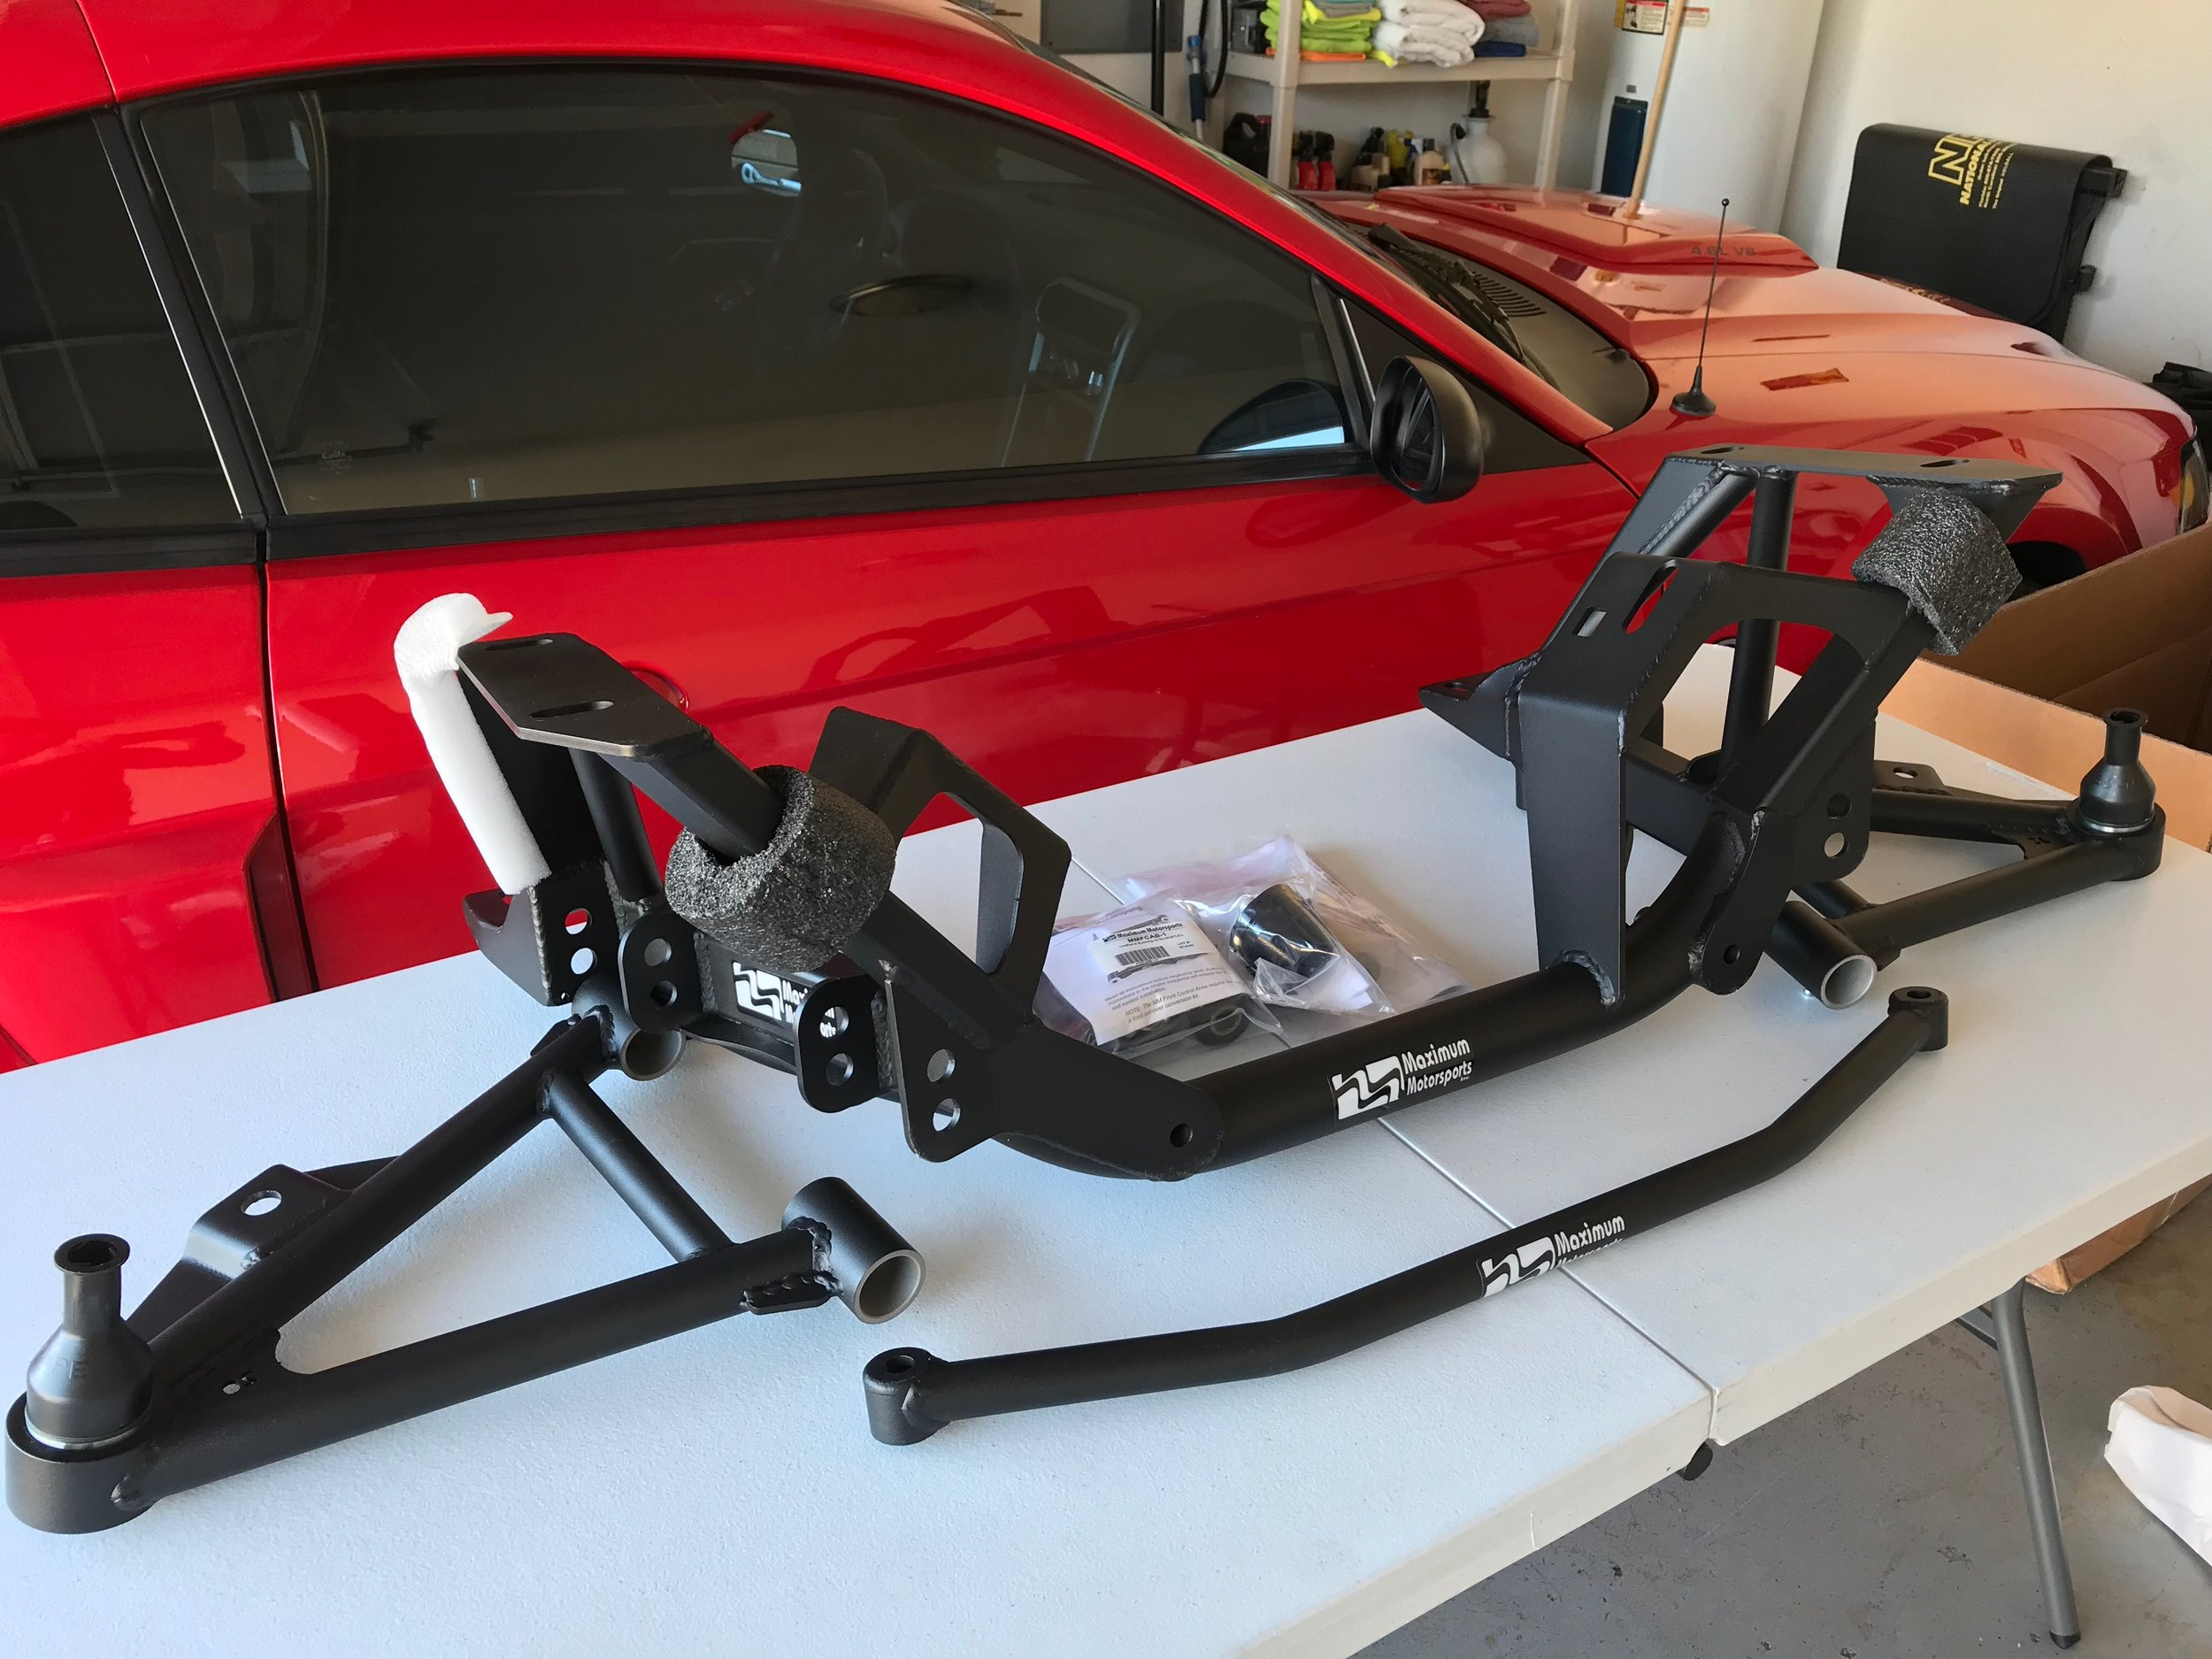 The extra beefy design of the Maximum Motorsports k-member, along with the reduced weight, added rigidity, and extra clearance makes this a win for any Mustang owner.